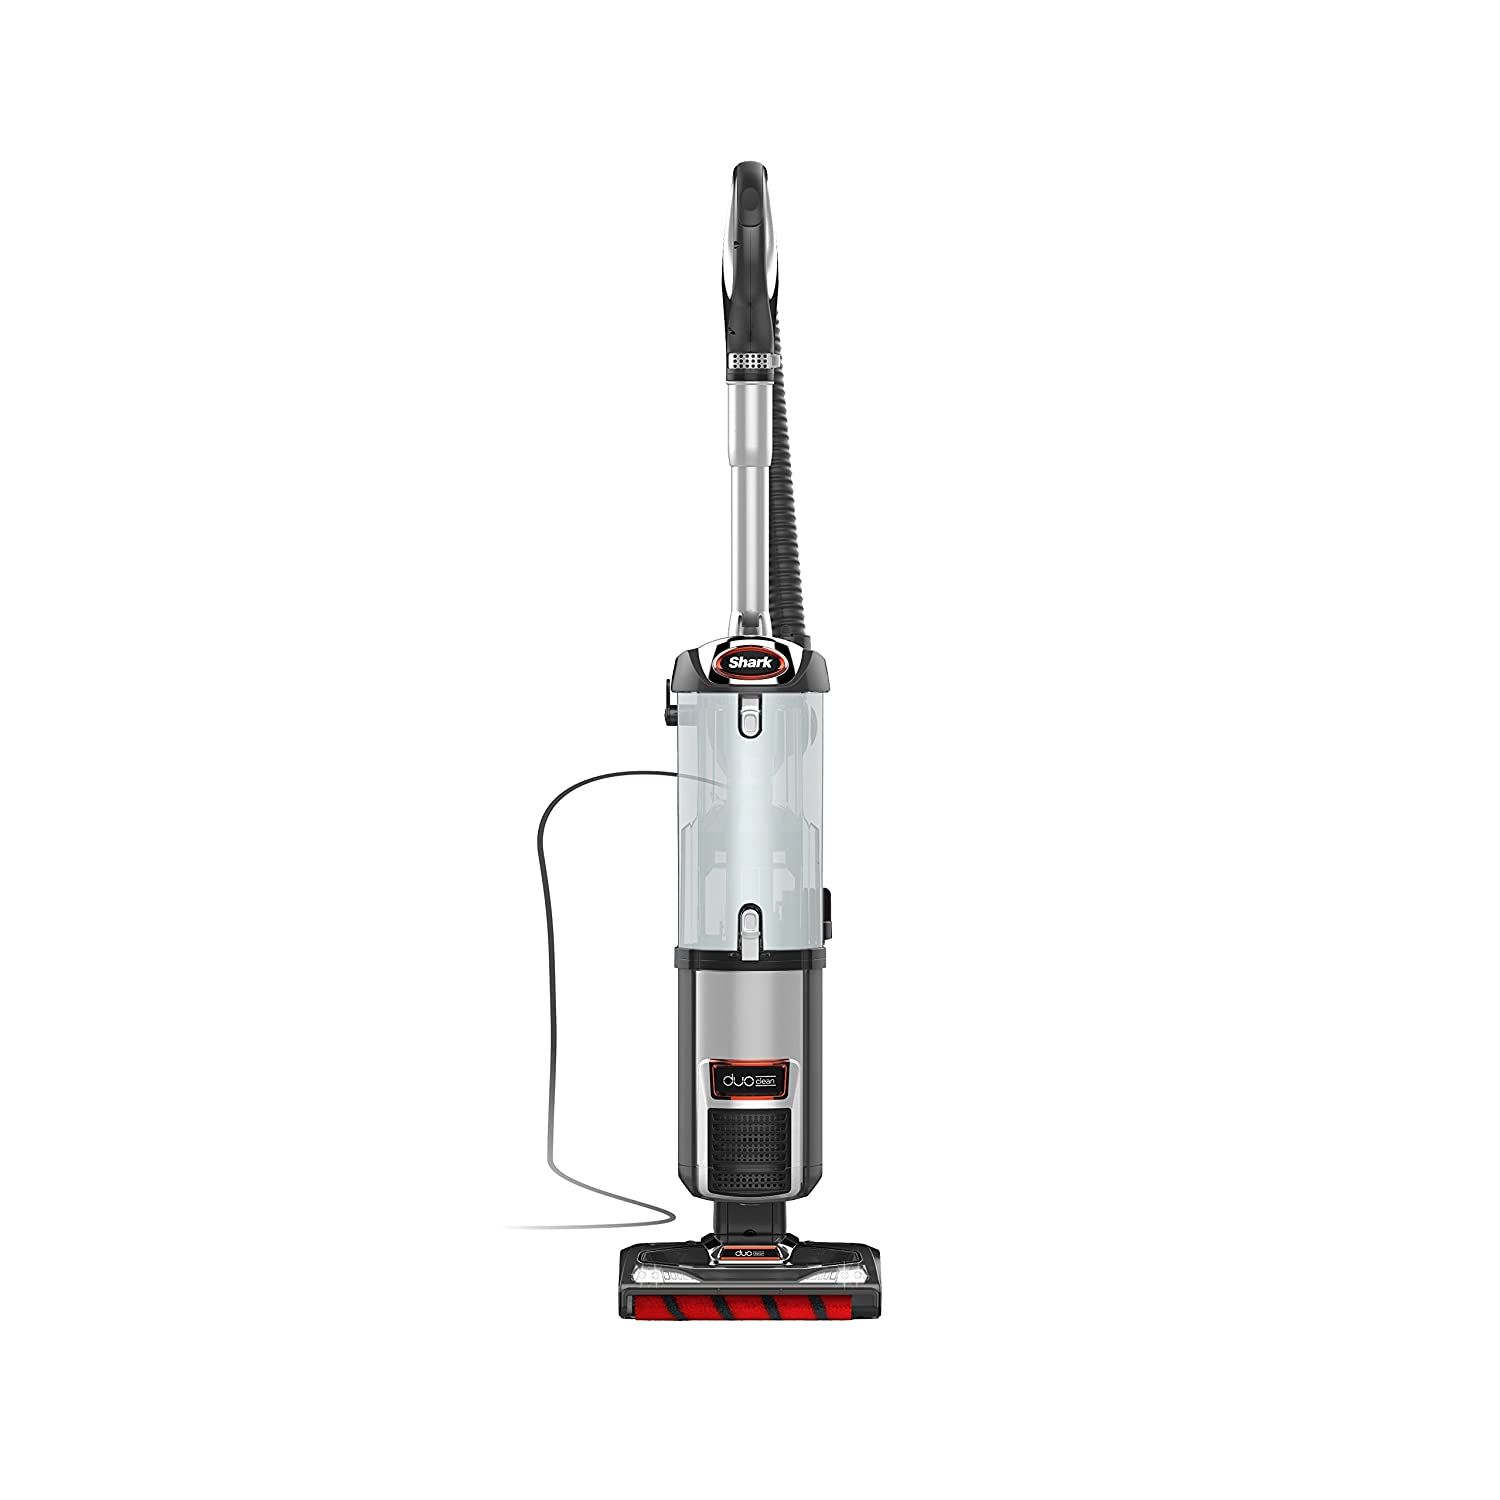 Shark DuoClean Upright Vacuum for Carpet and Hard Floor with Pet Tool, HEPA Filter and Anti-Allergy Seal (NV202), Gray